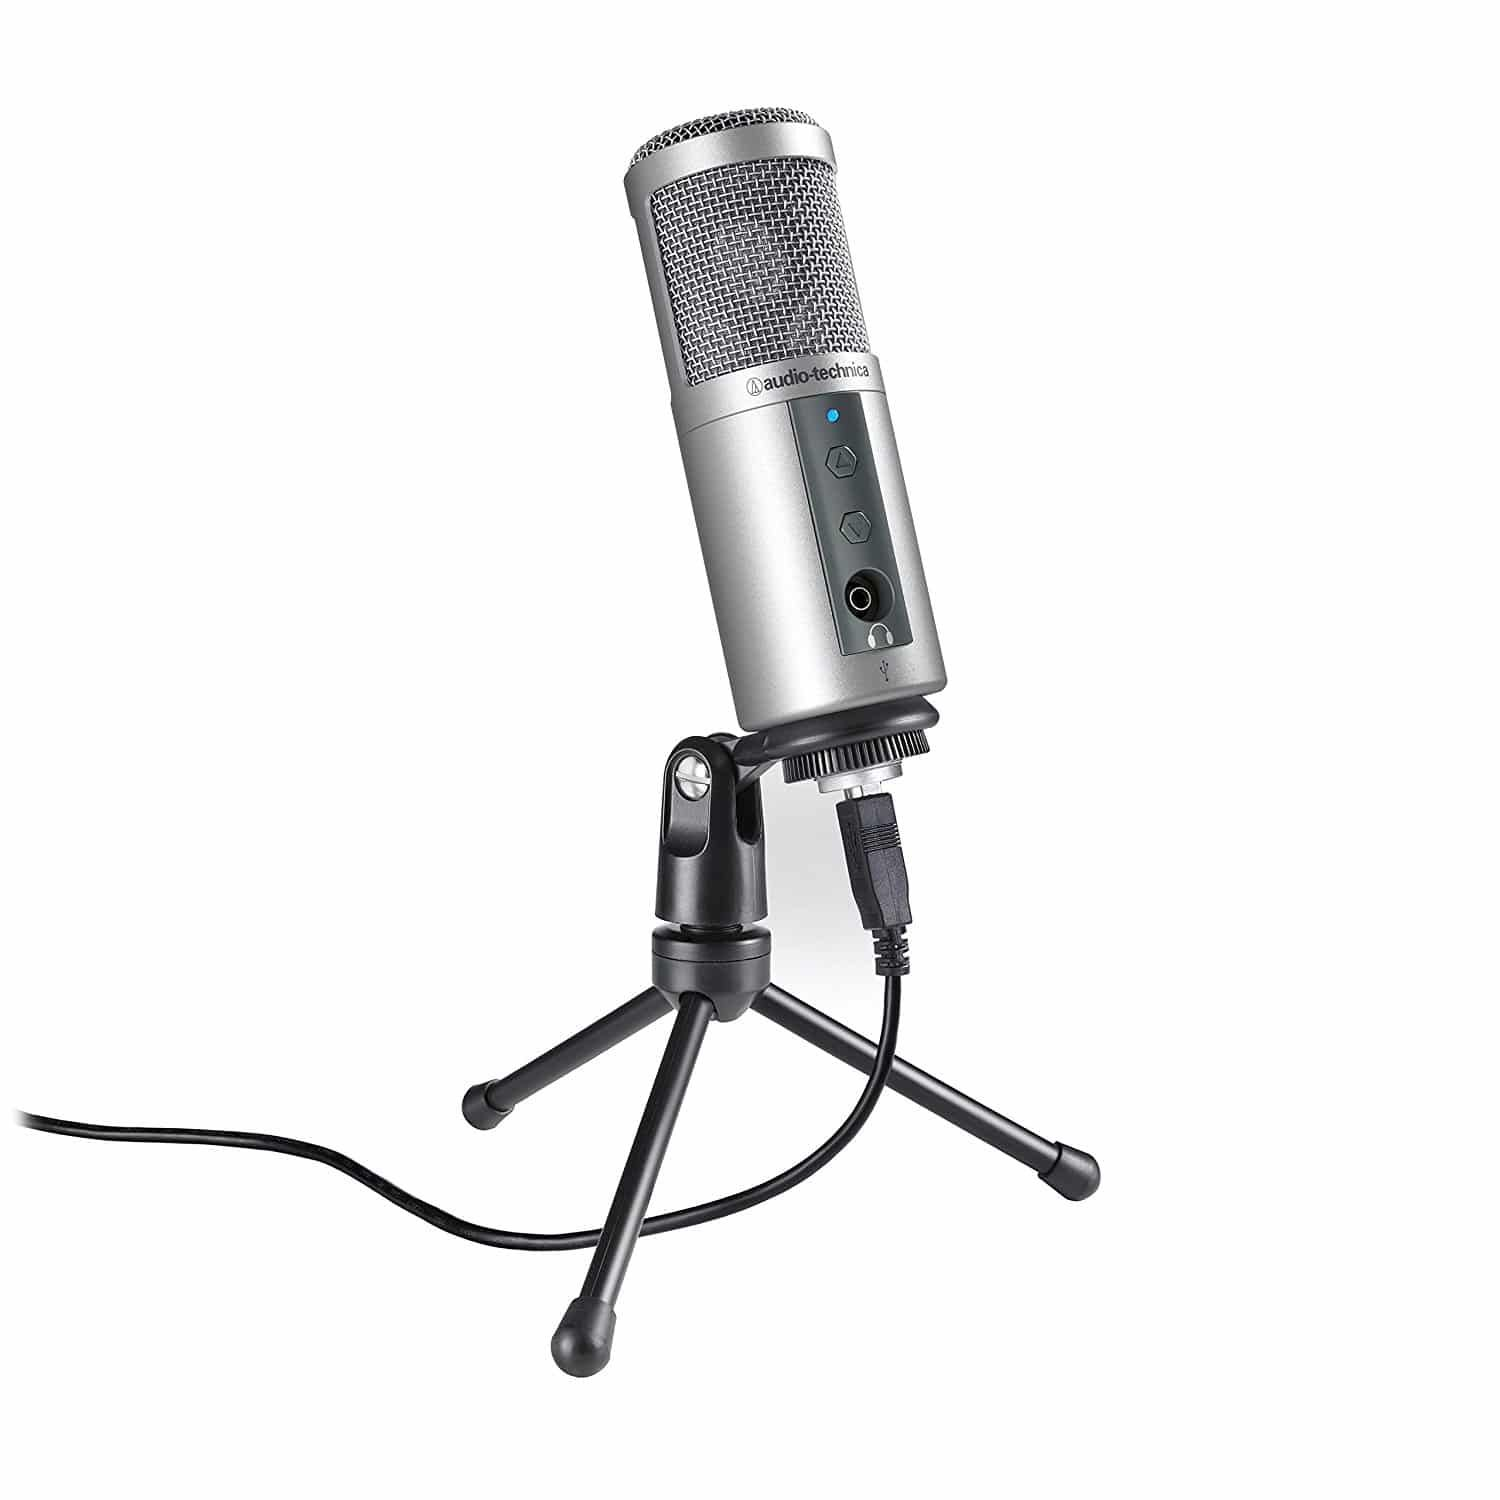 Top 10 Best Usb Microphones In 2021 Topreviewproducts Usb Microphone Microphone Audio Technica